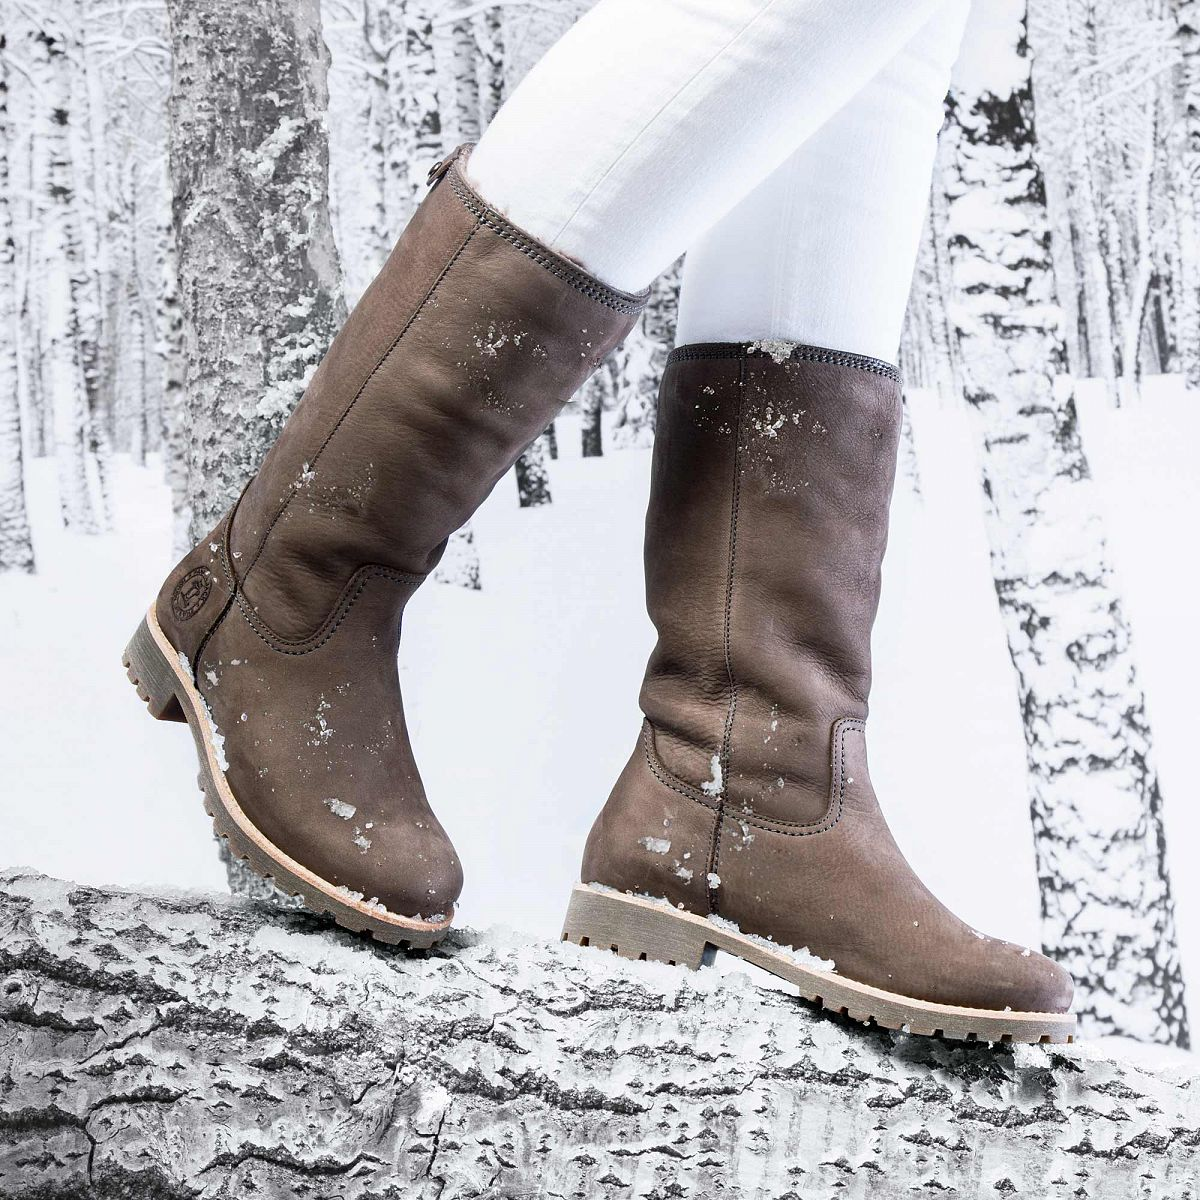 973a6723cb5a Women s boot BAMBINA IGLOO grey